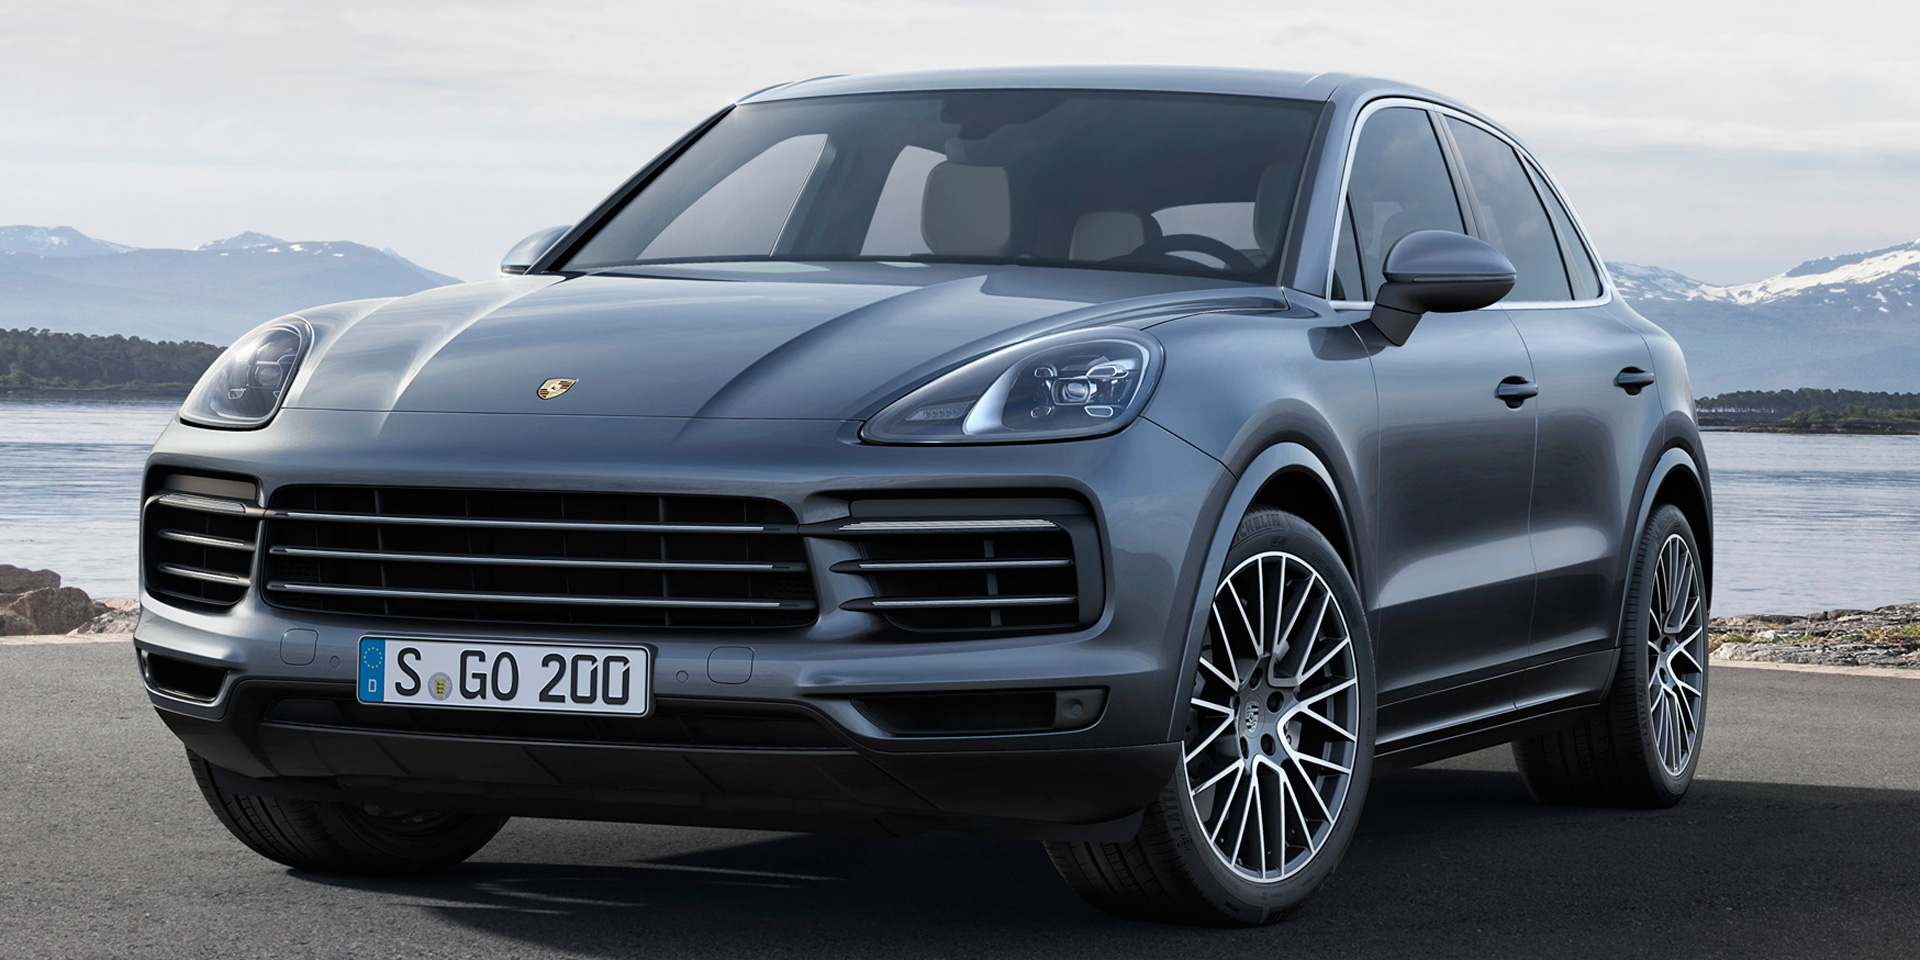 2019 - Porsche - Cayenne - Vehicles on Display | Chicago Auto Show